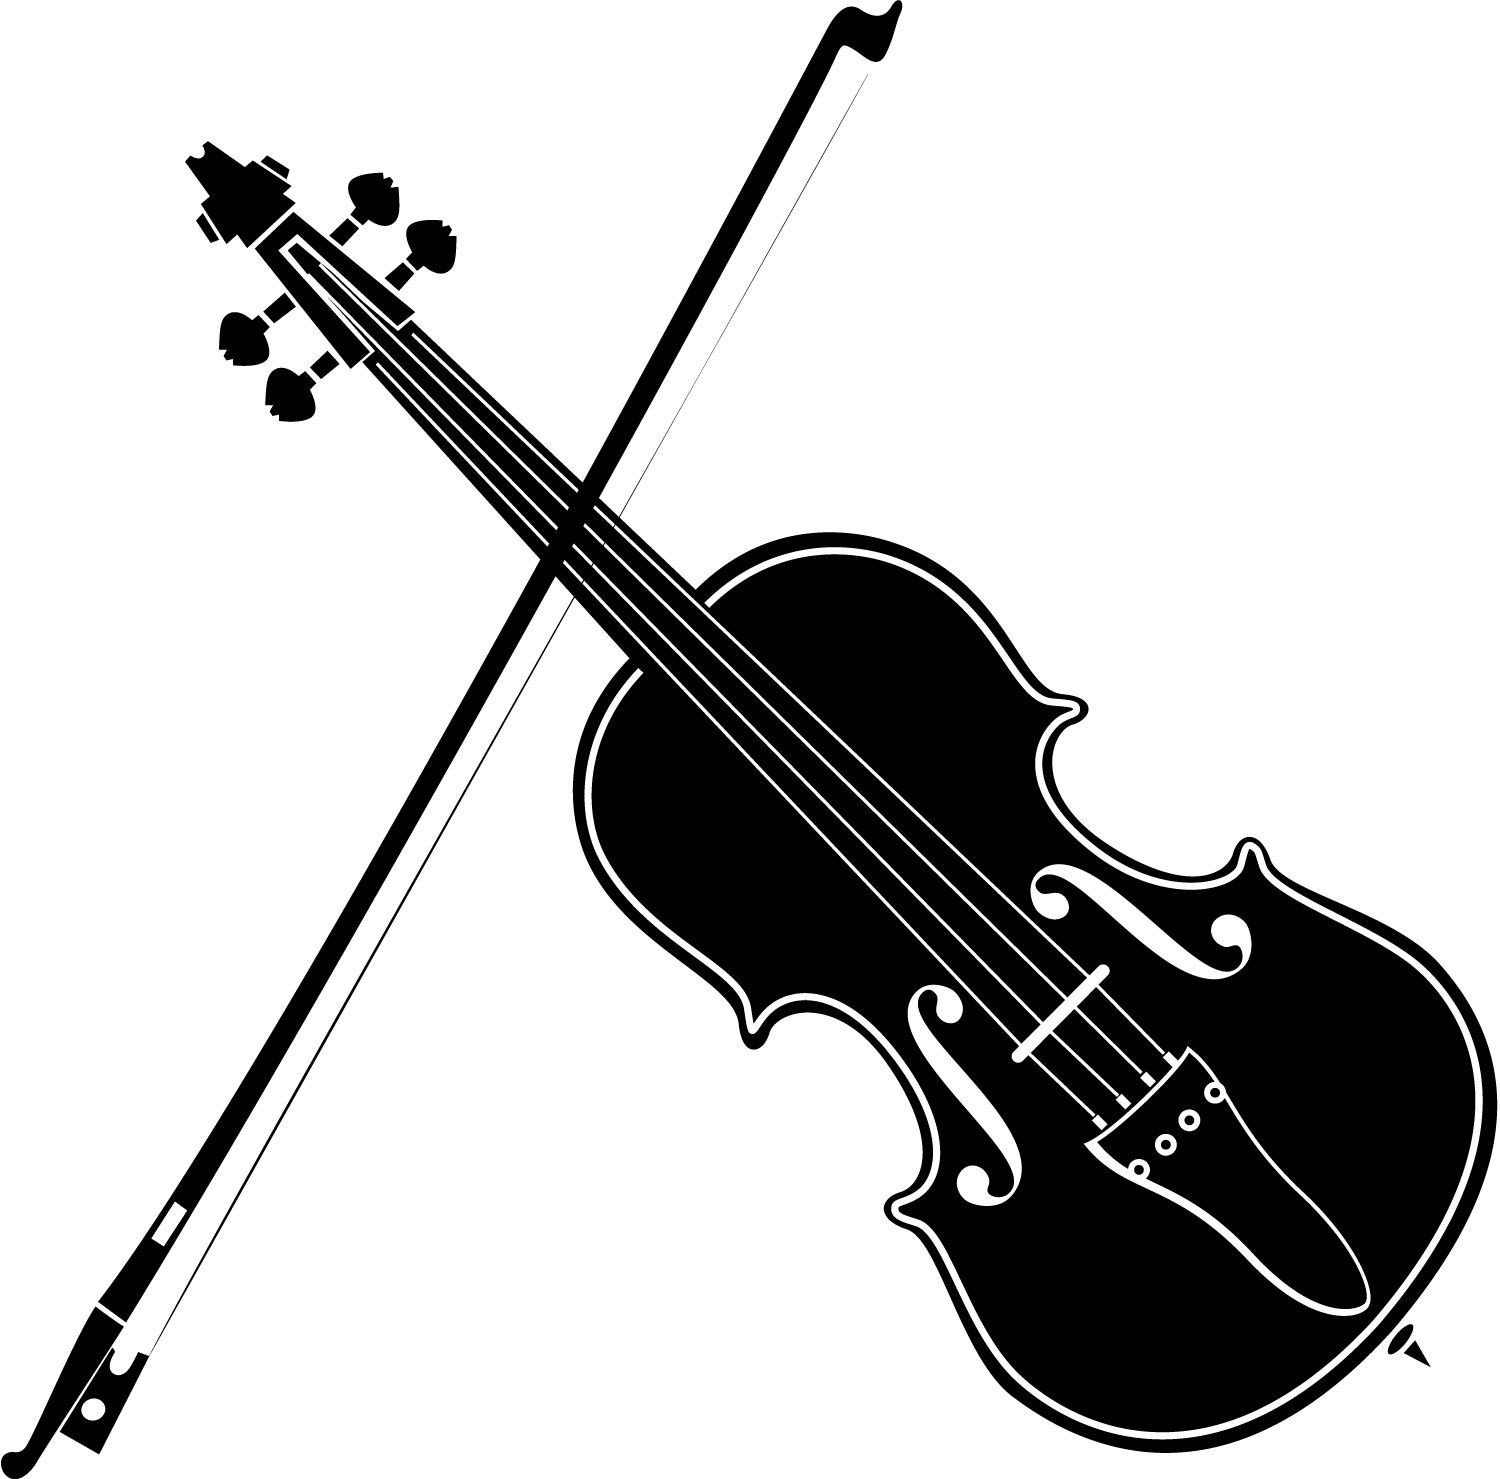 Violin clipart. Playing black and white